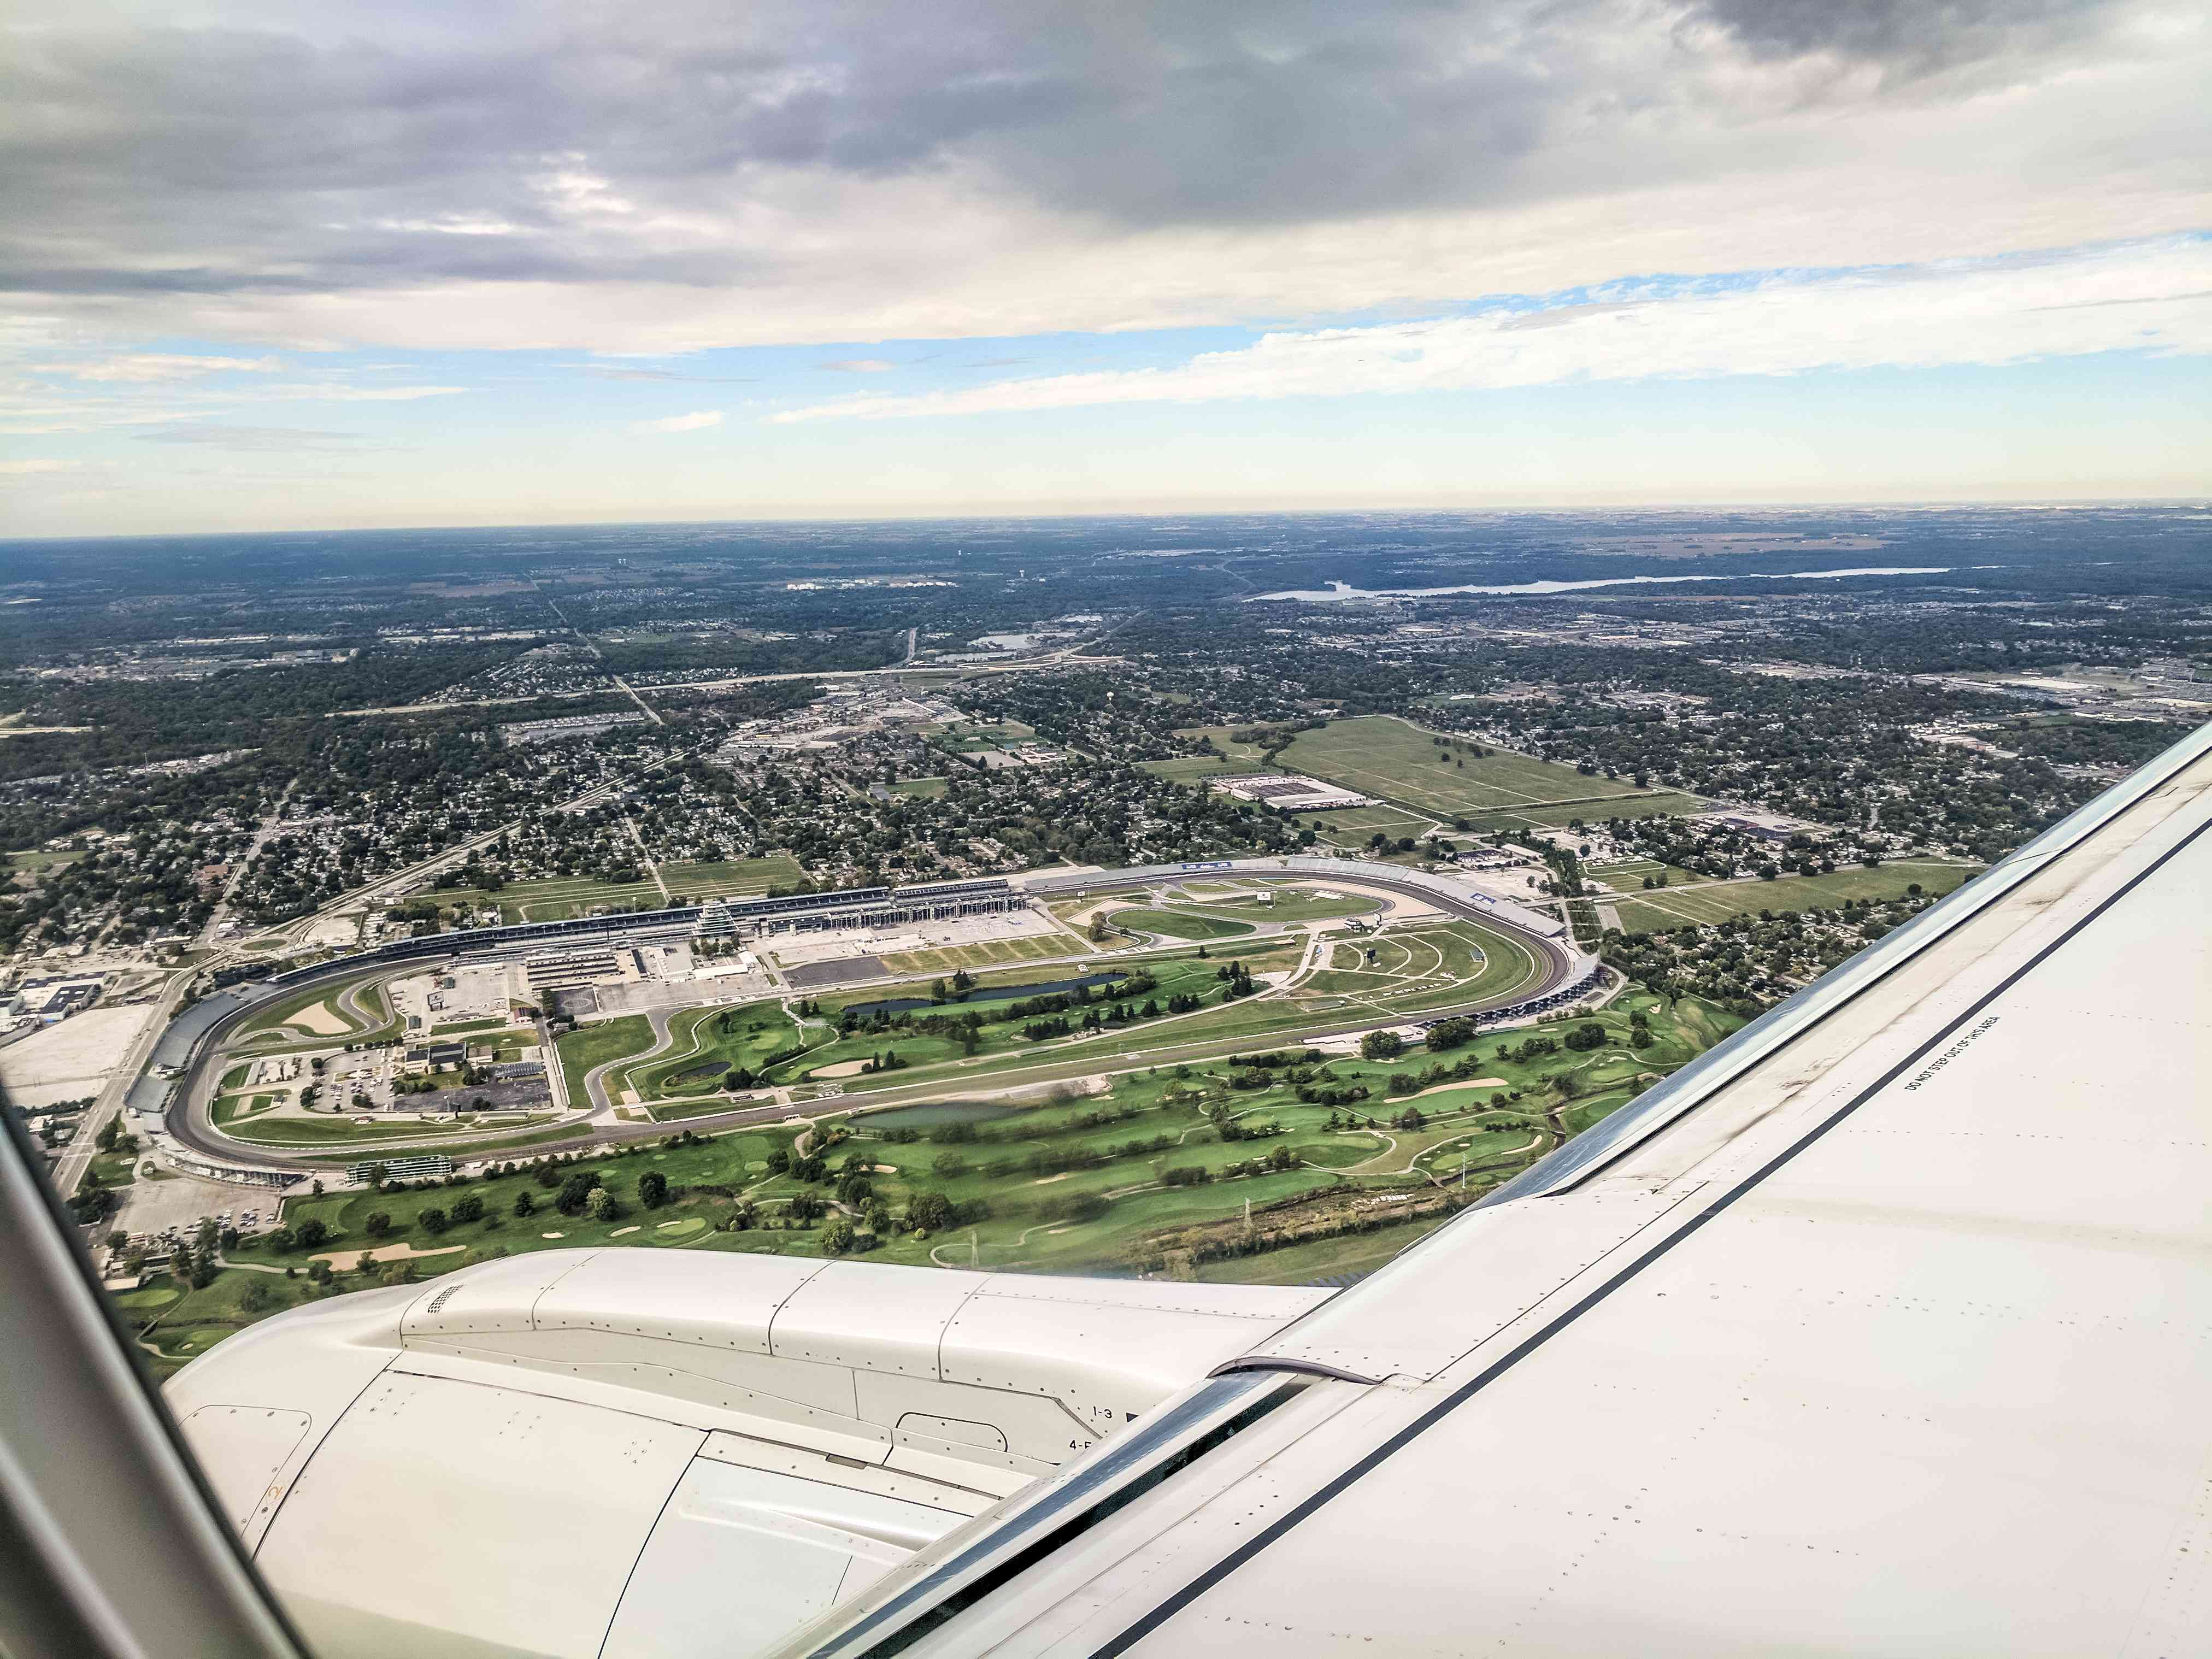 Aerial view of Indianapolis Motor Speedway with airplane wing